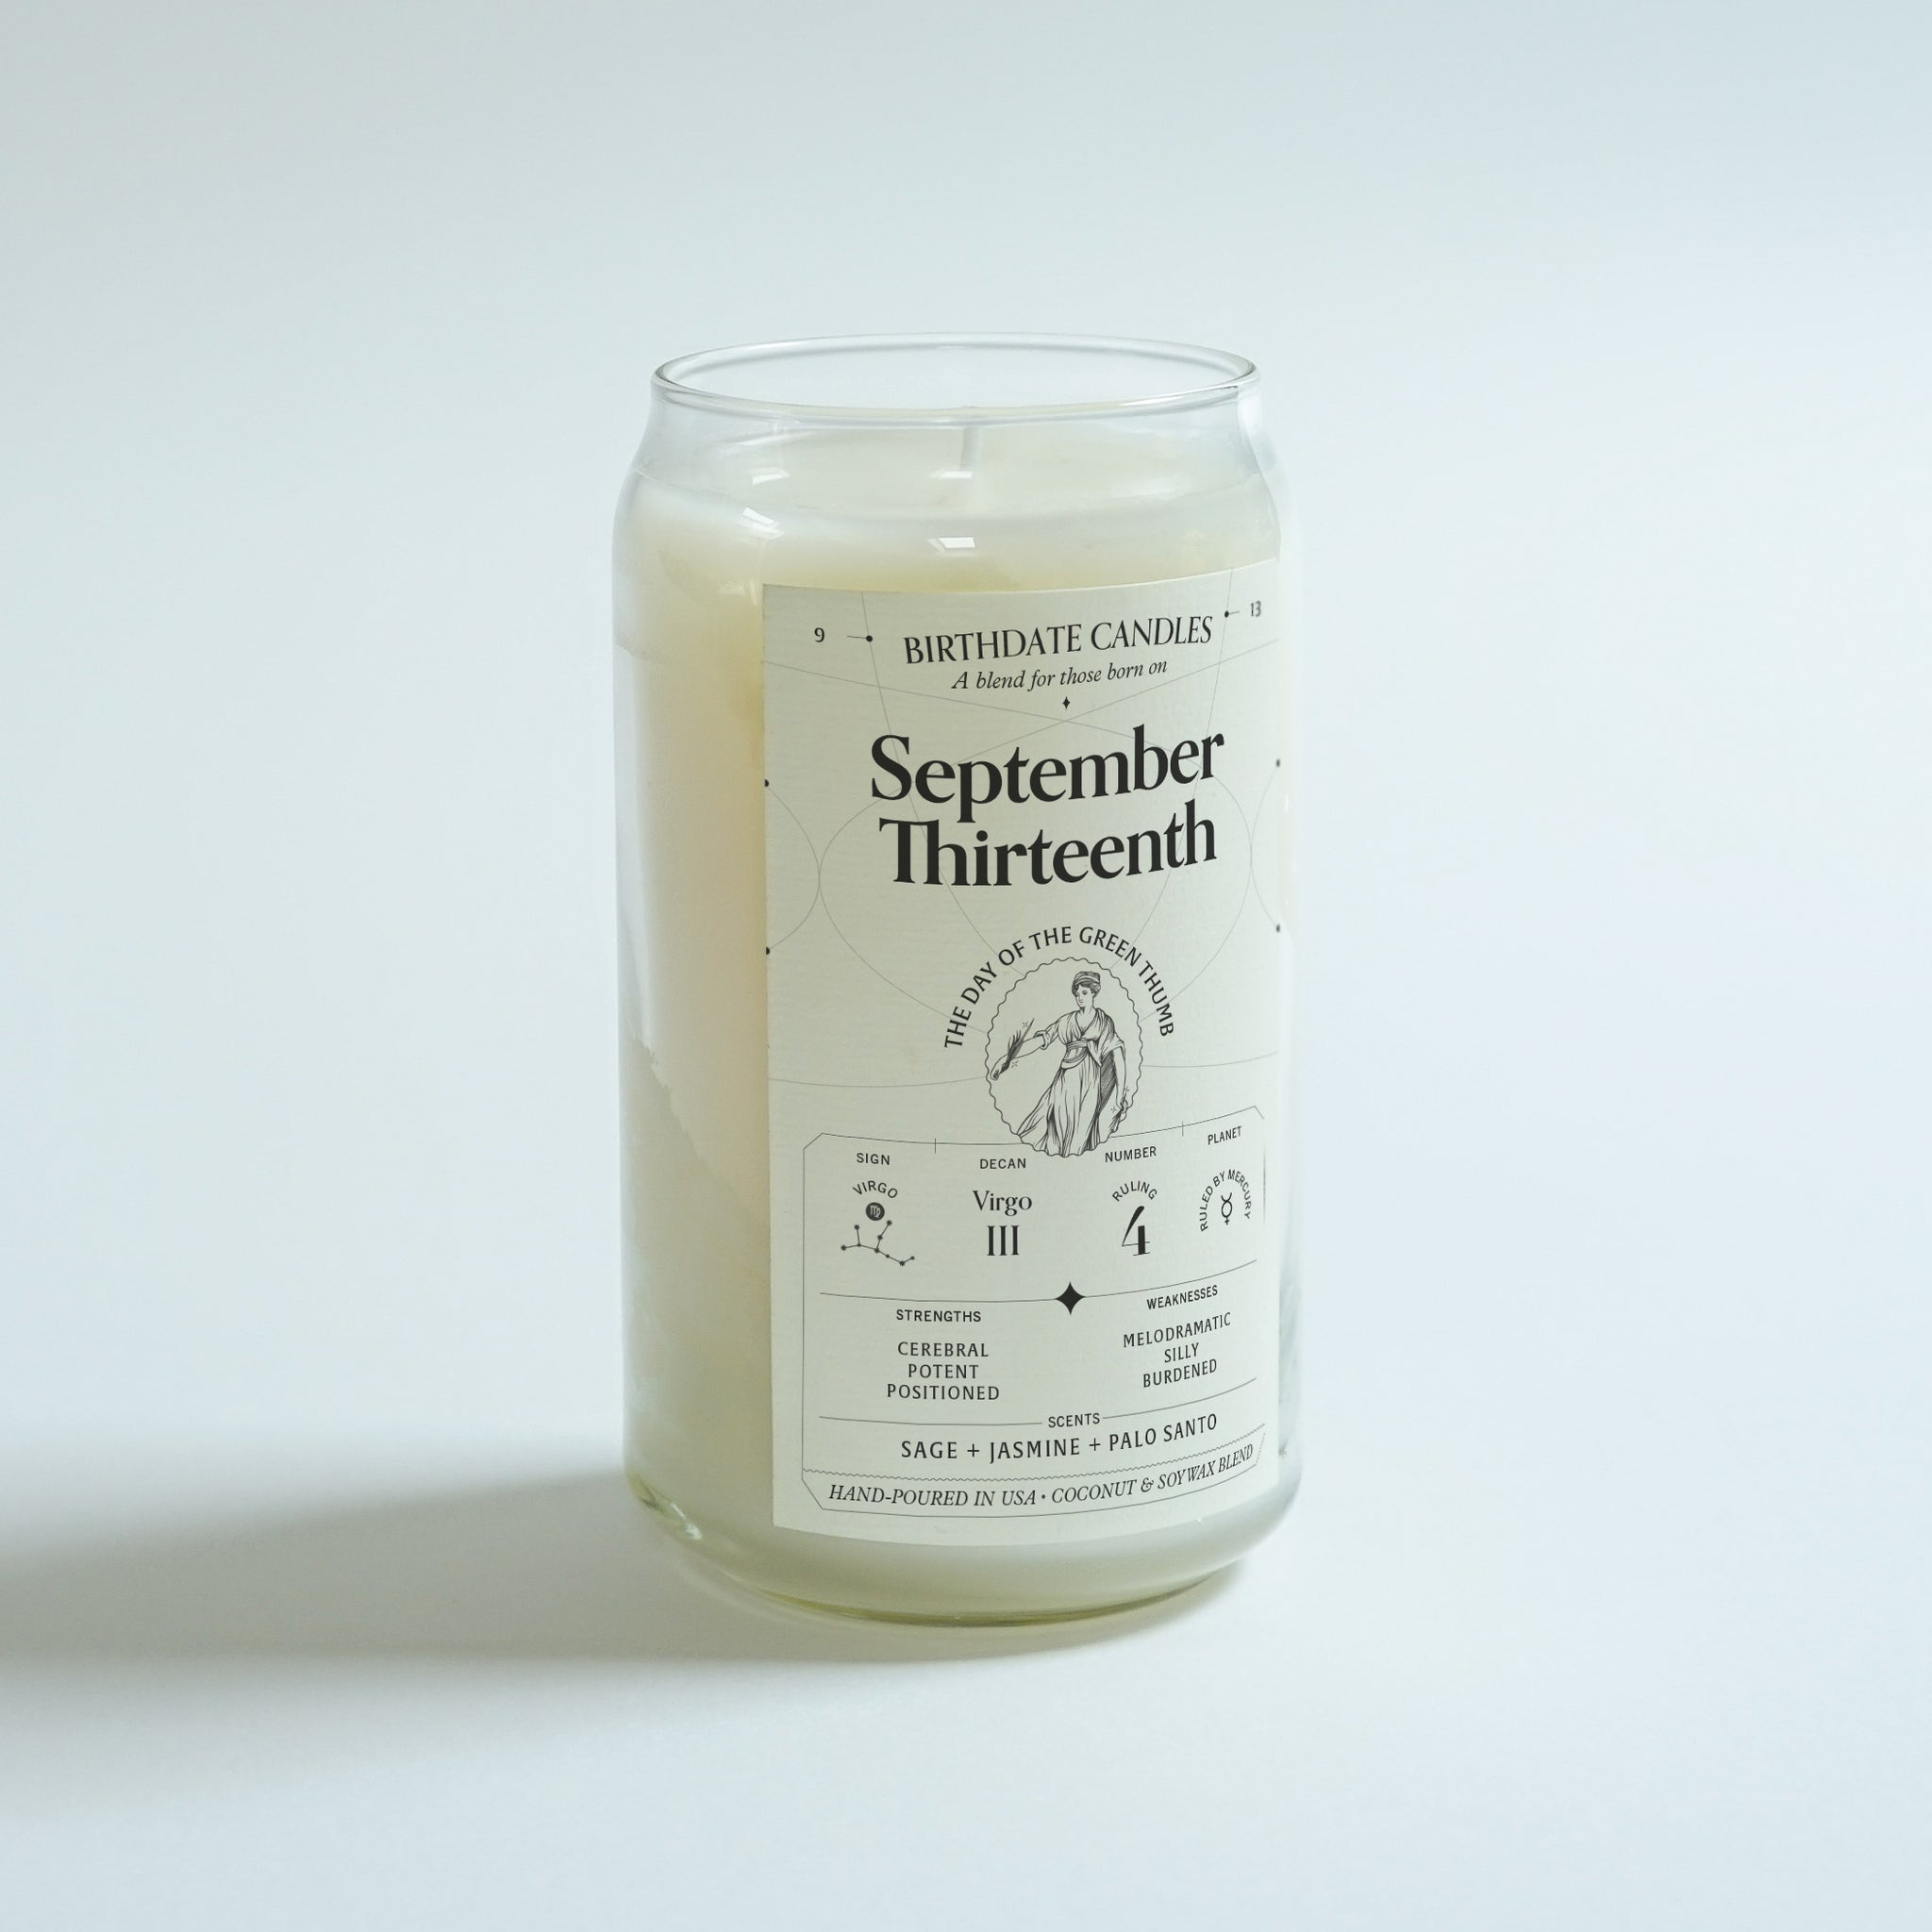 The September Thirteenth Birthday Candle